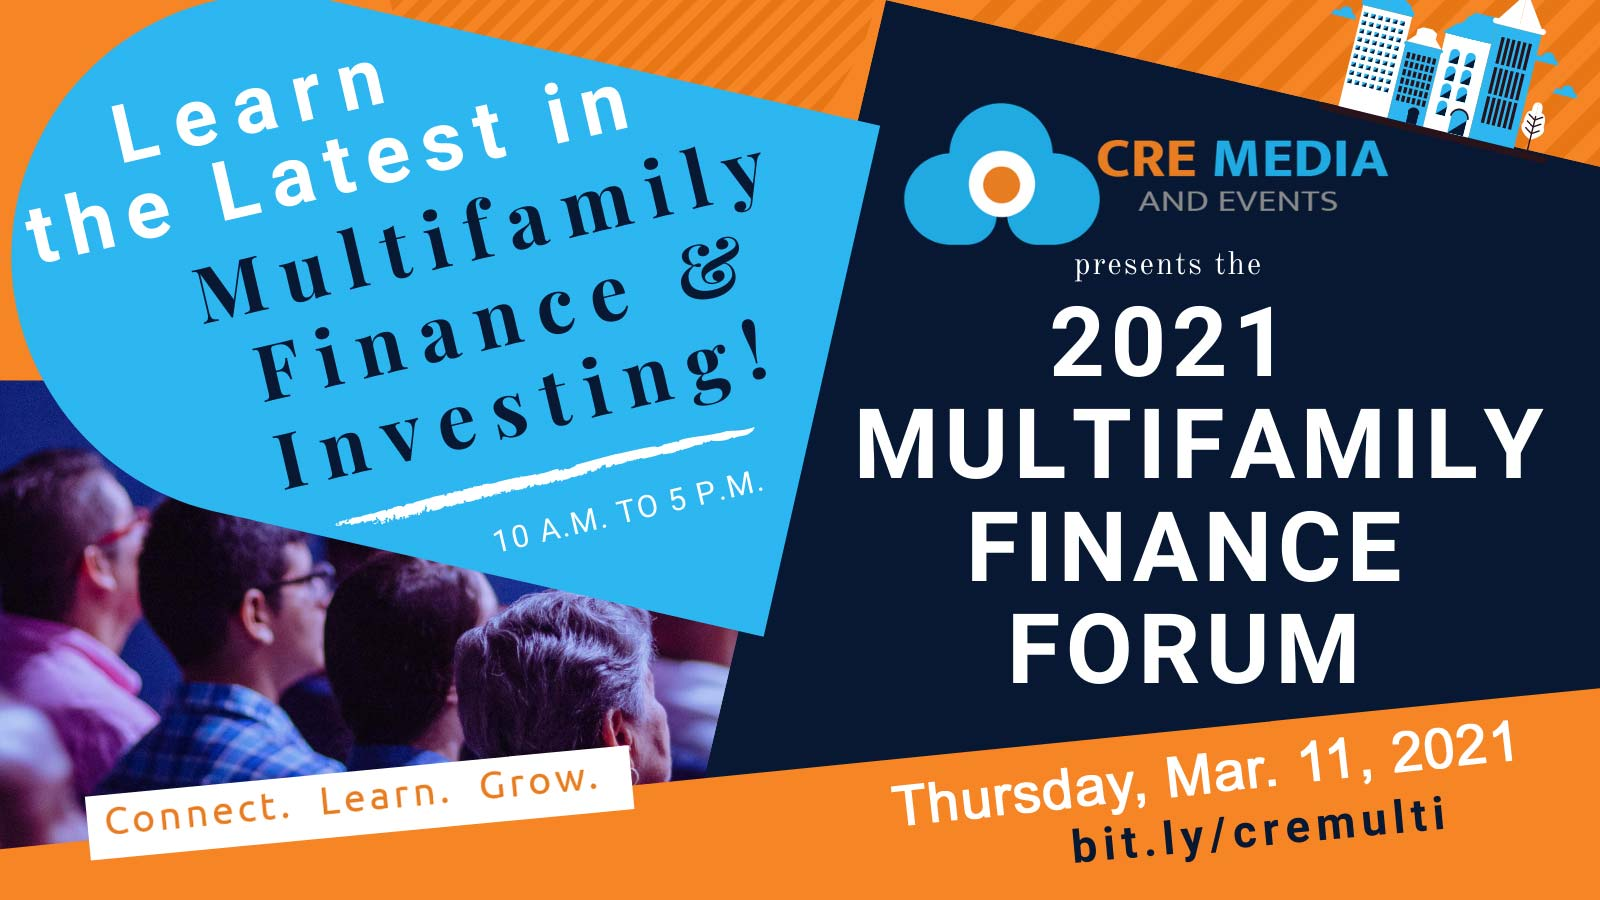 2021-Virtual-Multifamily-Finance-forum-2021-CRE-Media-and-Events